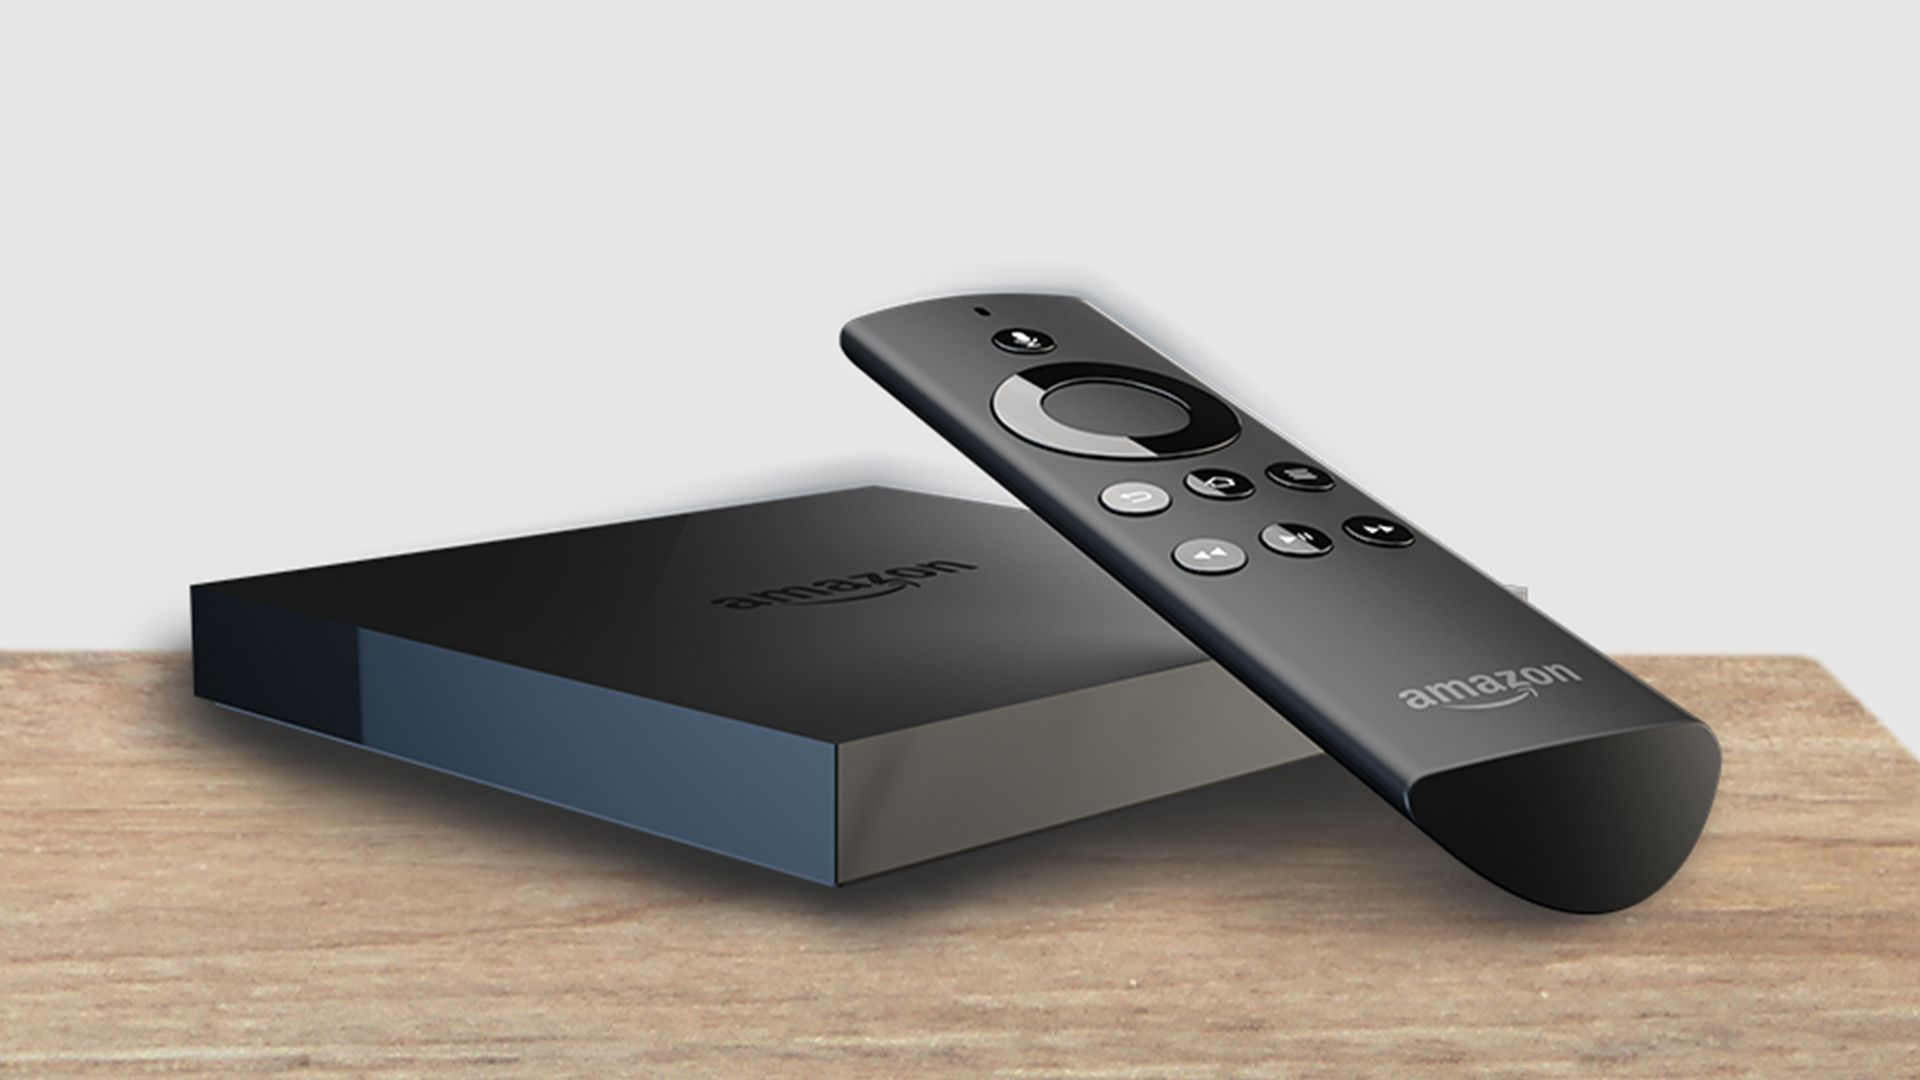 Amazon fire tv is a tiny box that connects your hdtv